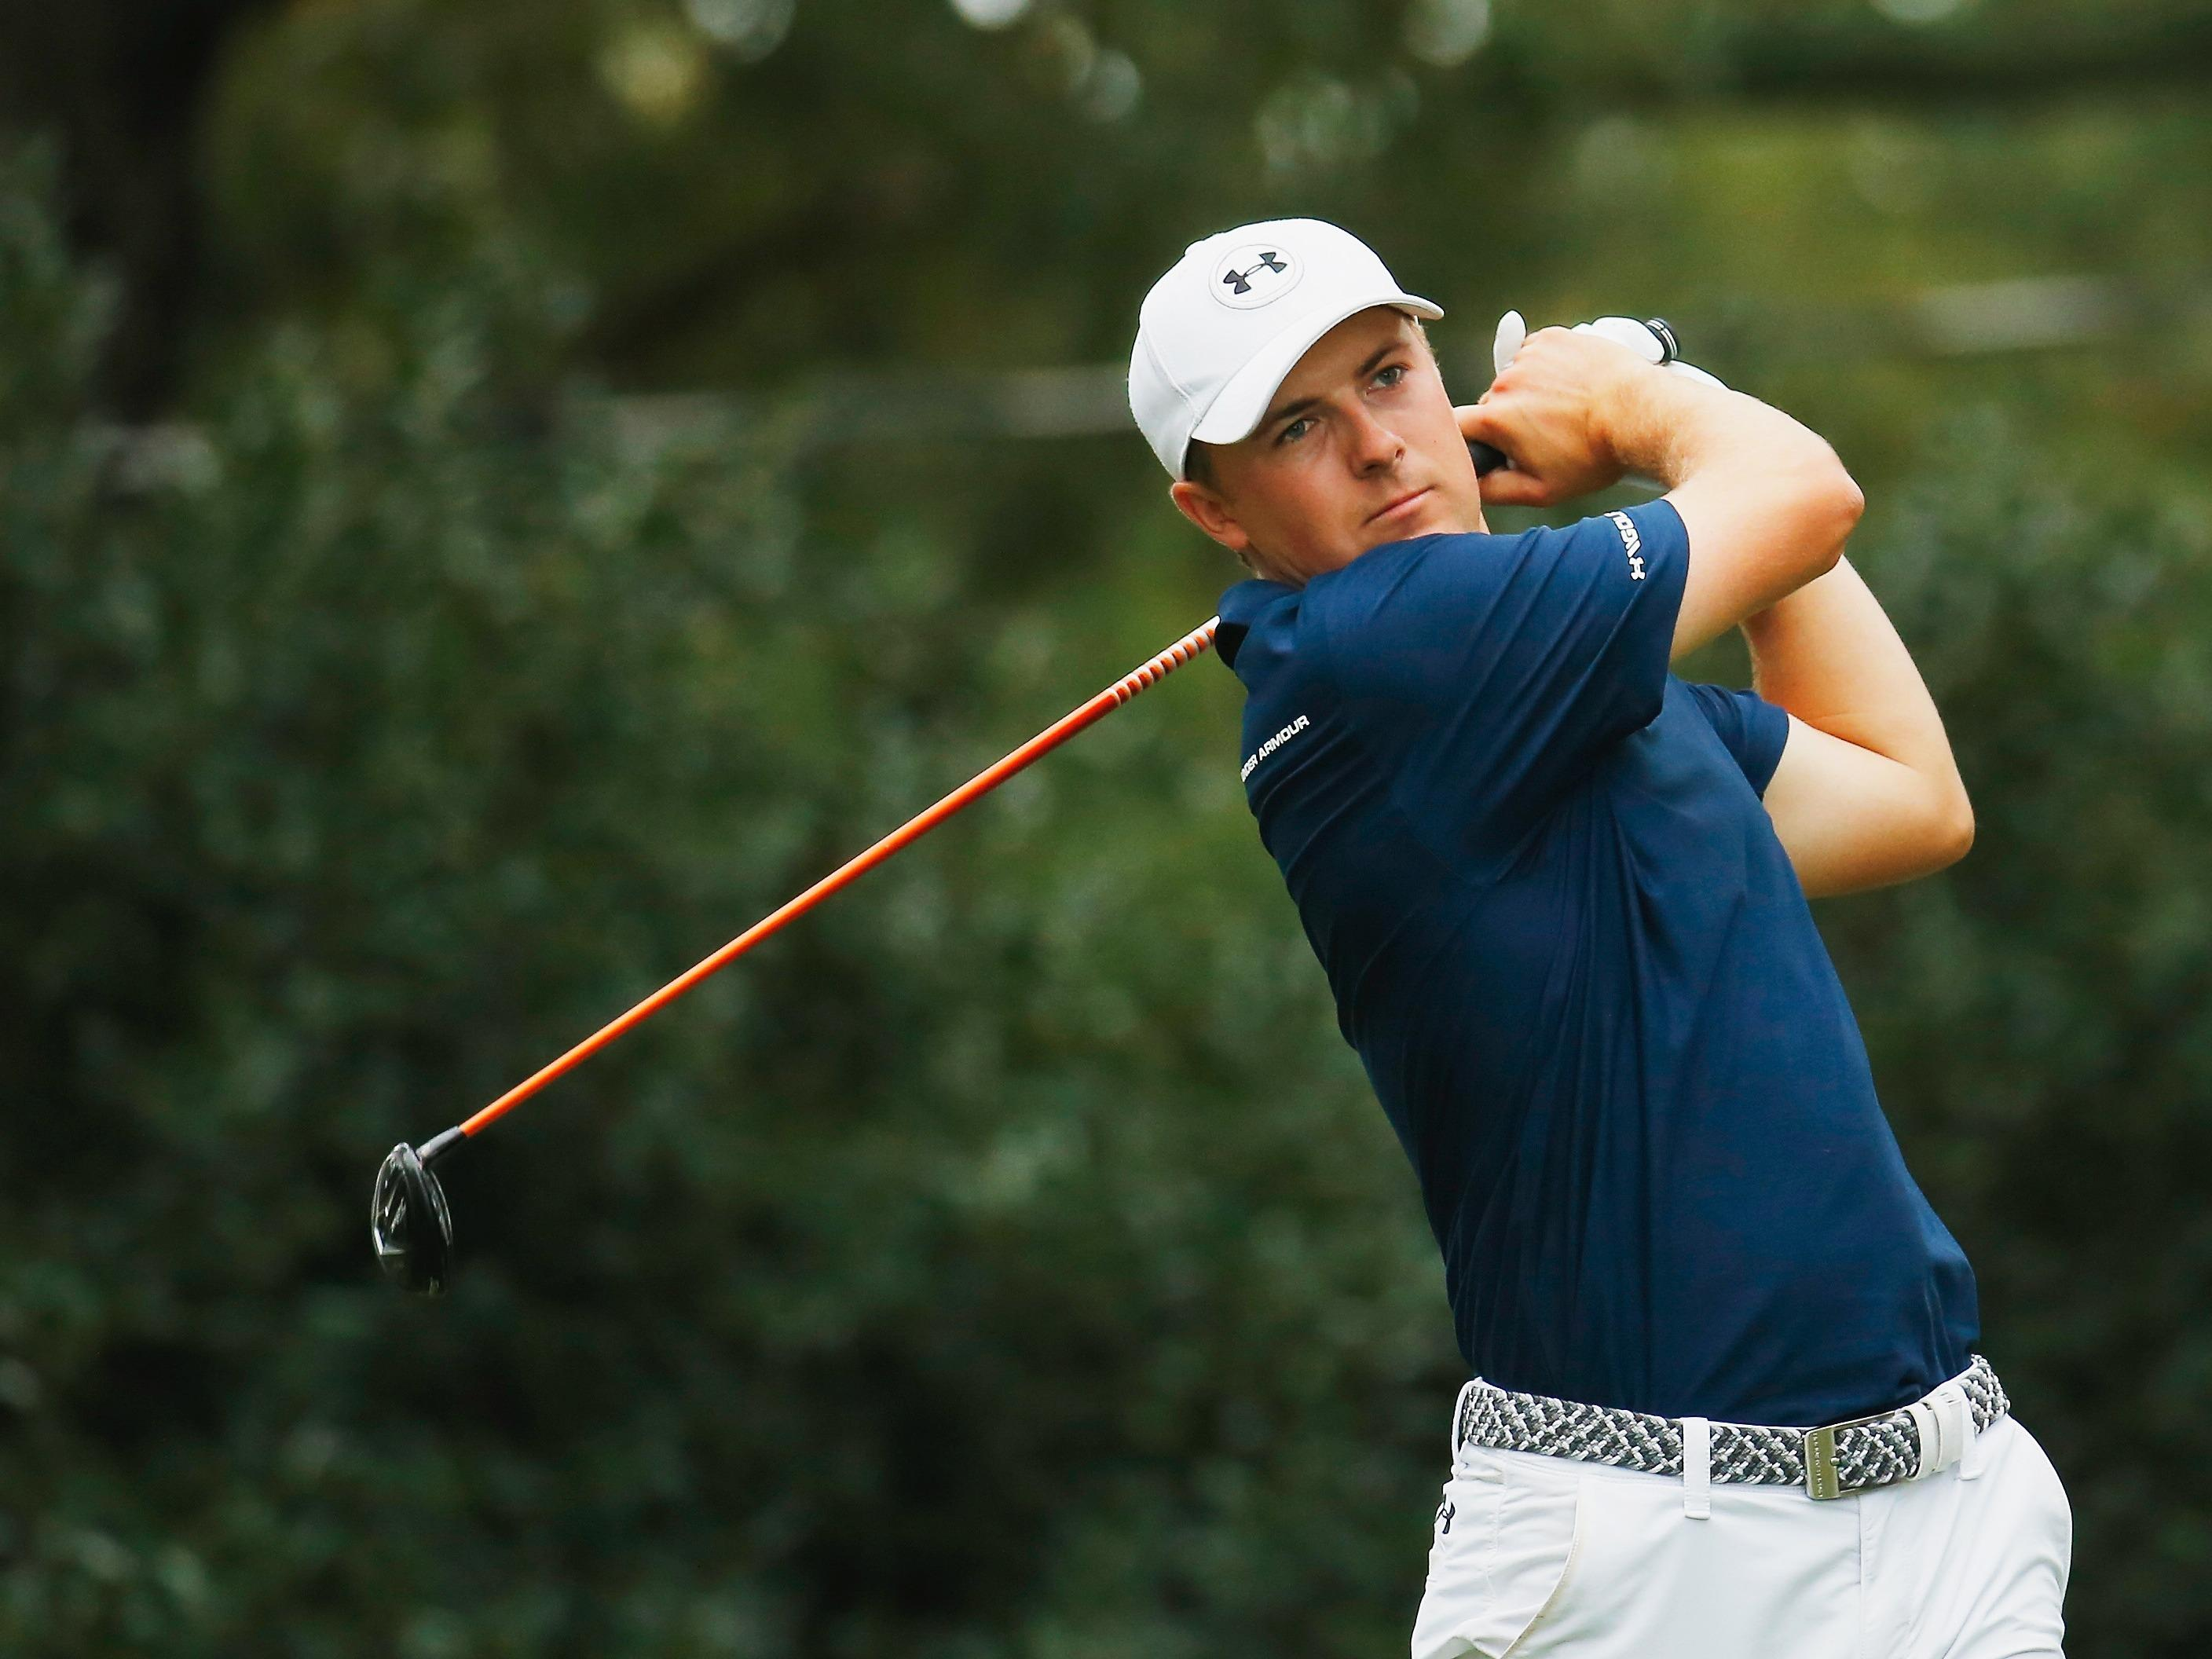 The biggest flaw in Jordan Spieth's game is actually a huge advantage